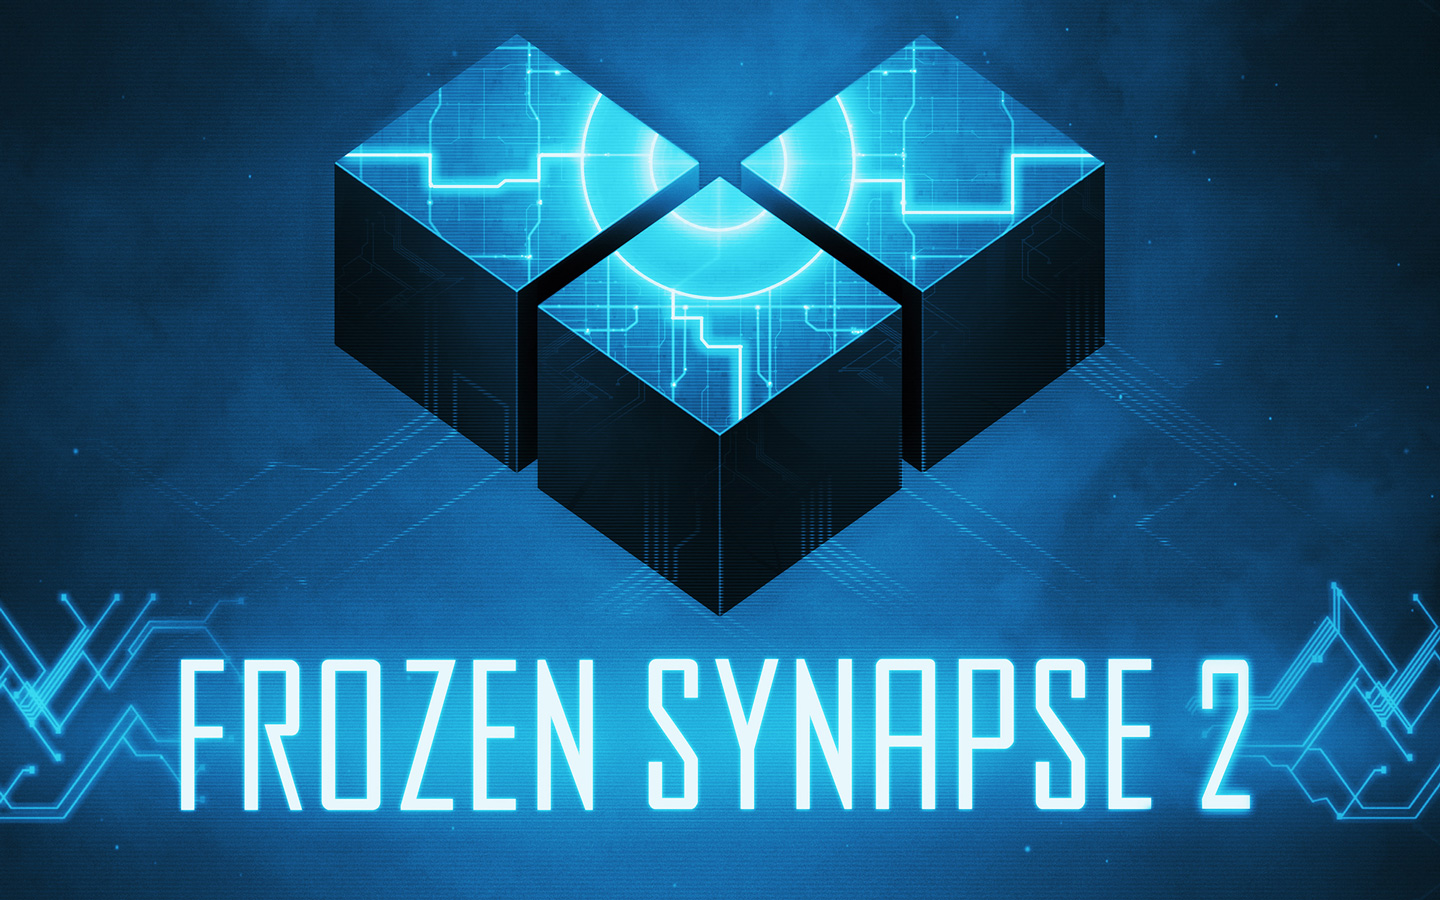 Free Frozen Synapse 2 Wallpaper in 1440x900